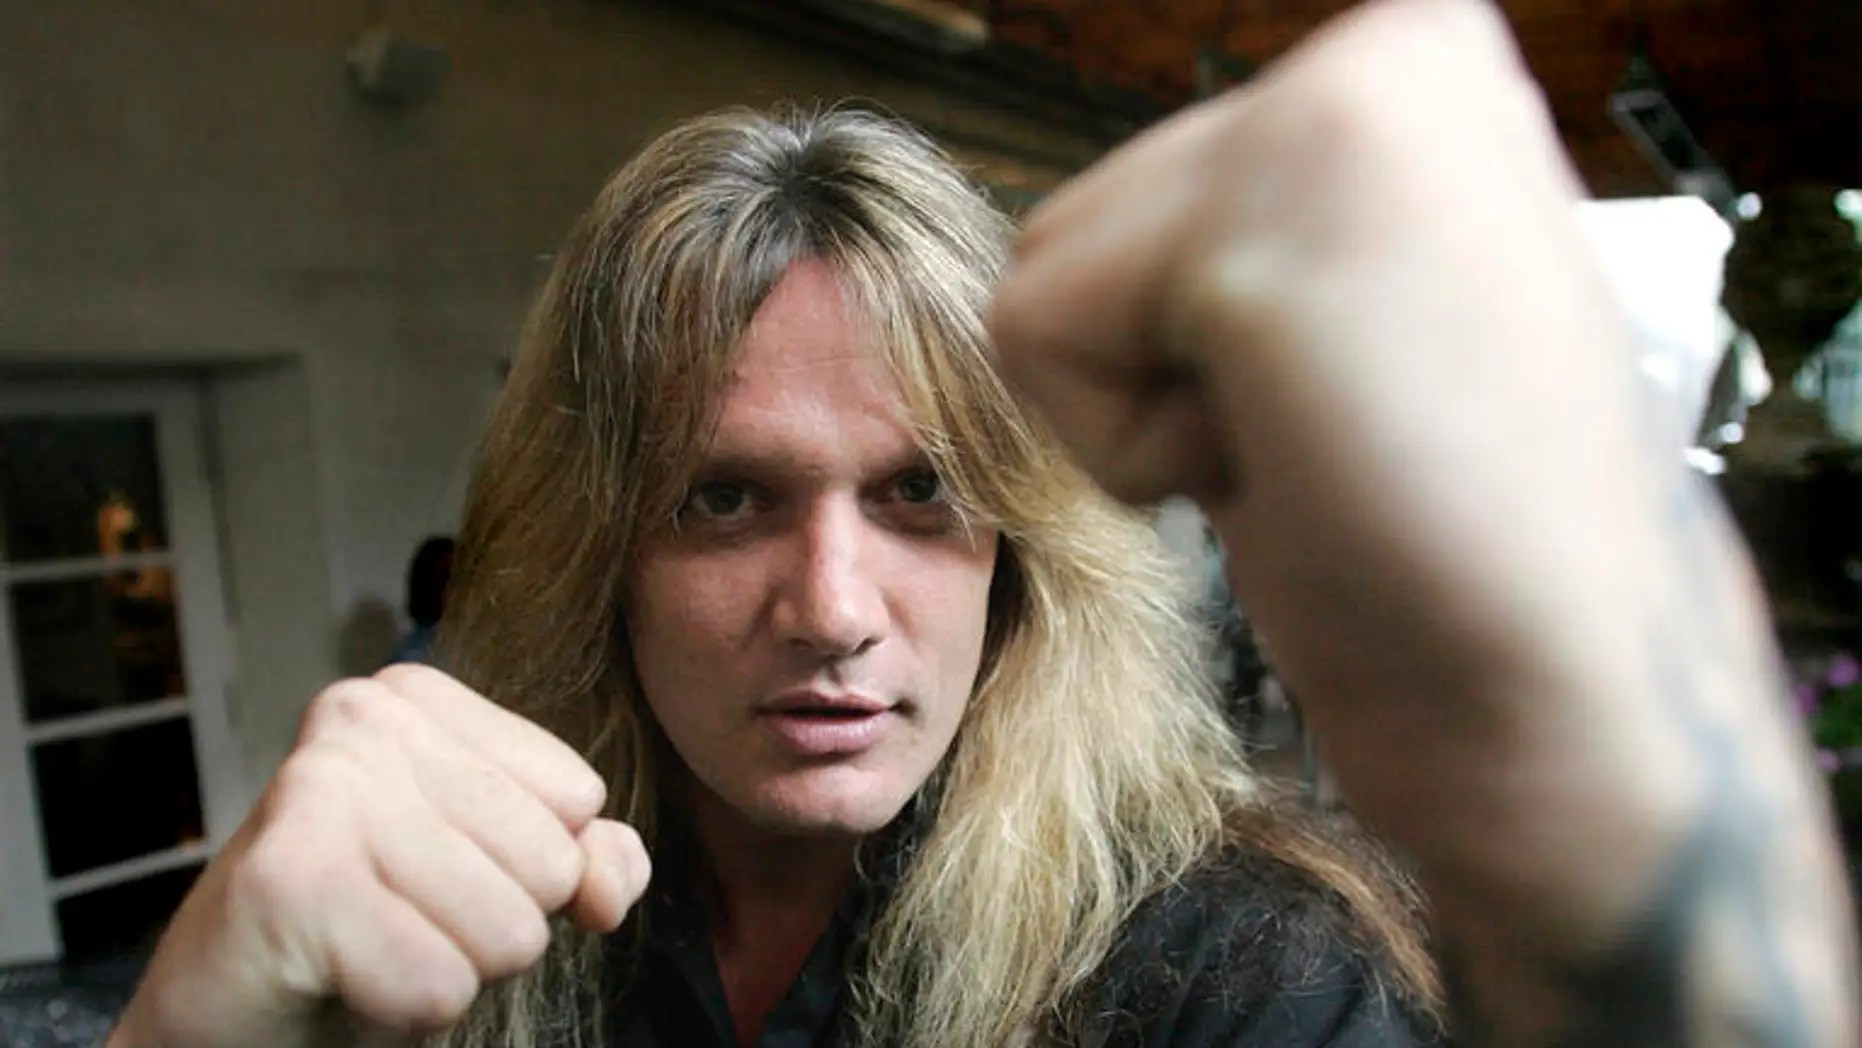 Bach Thu Mb Sebastian Bach Arrested For Tasting Hand At Wine Bar Fox News